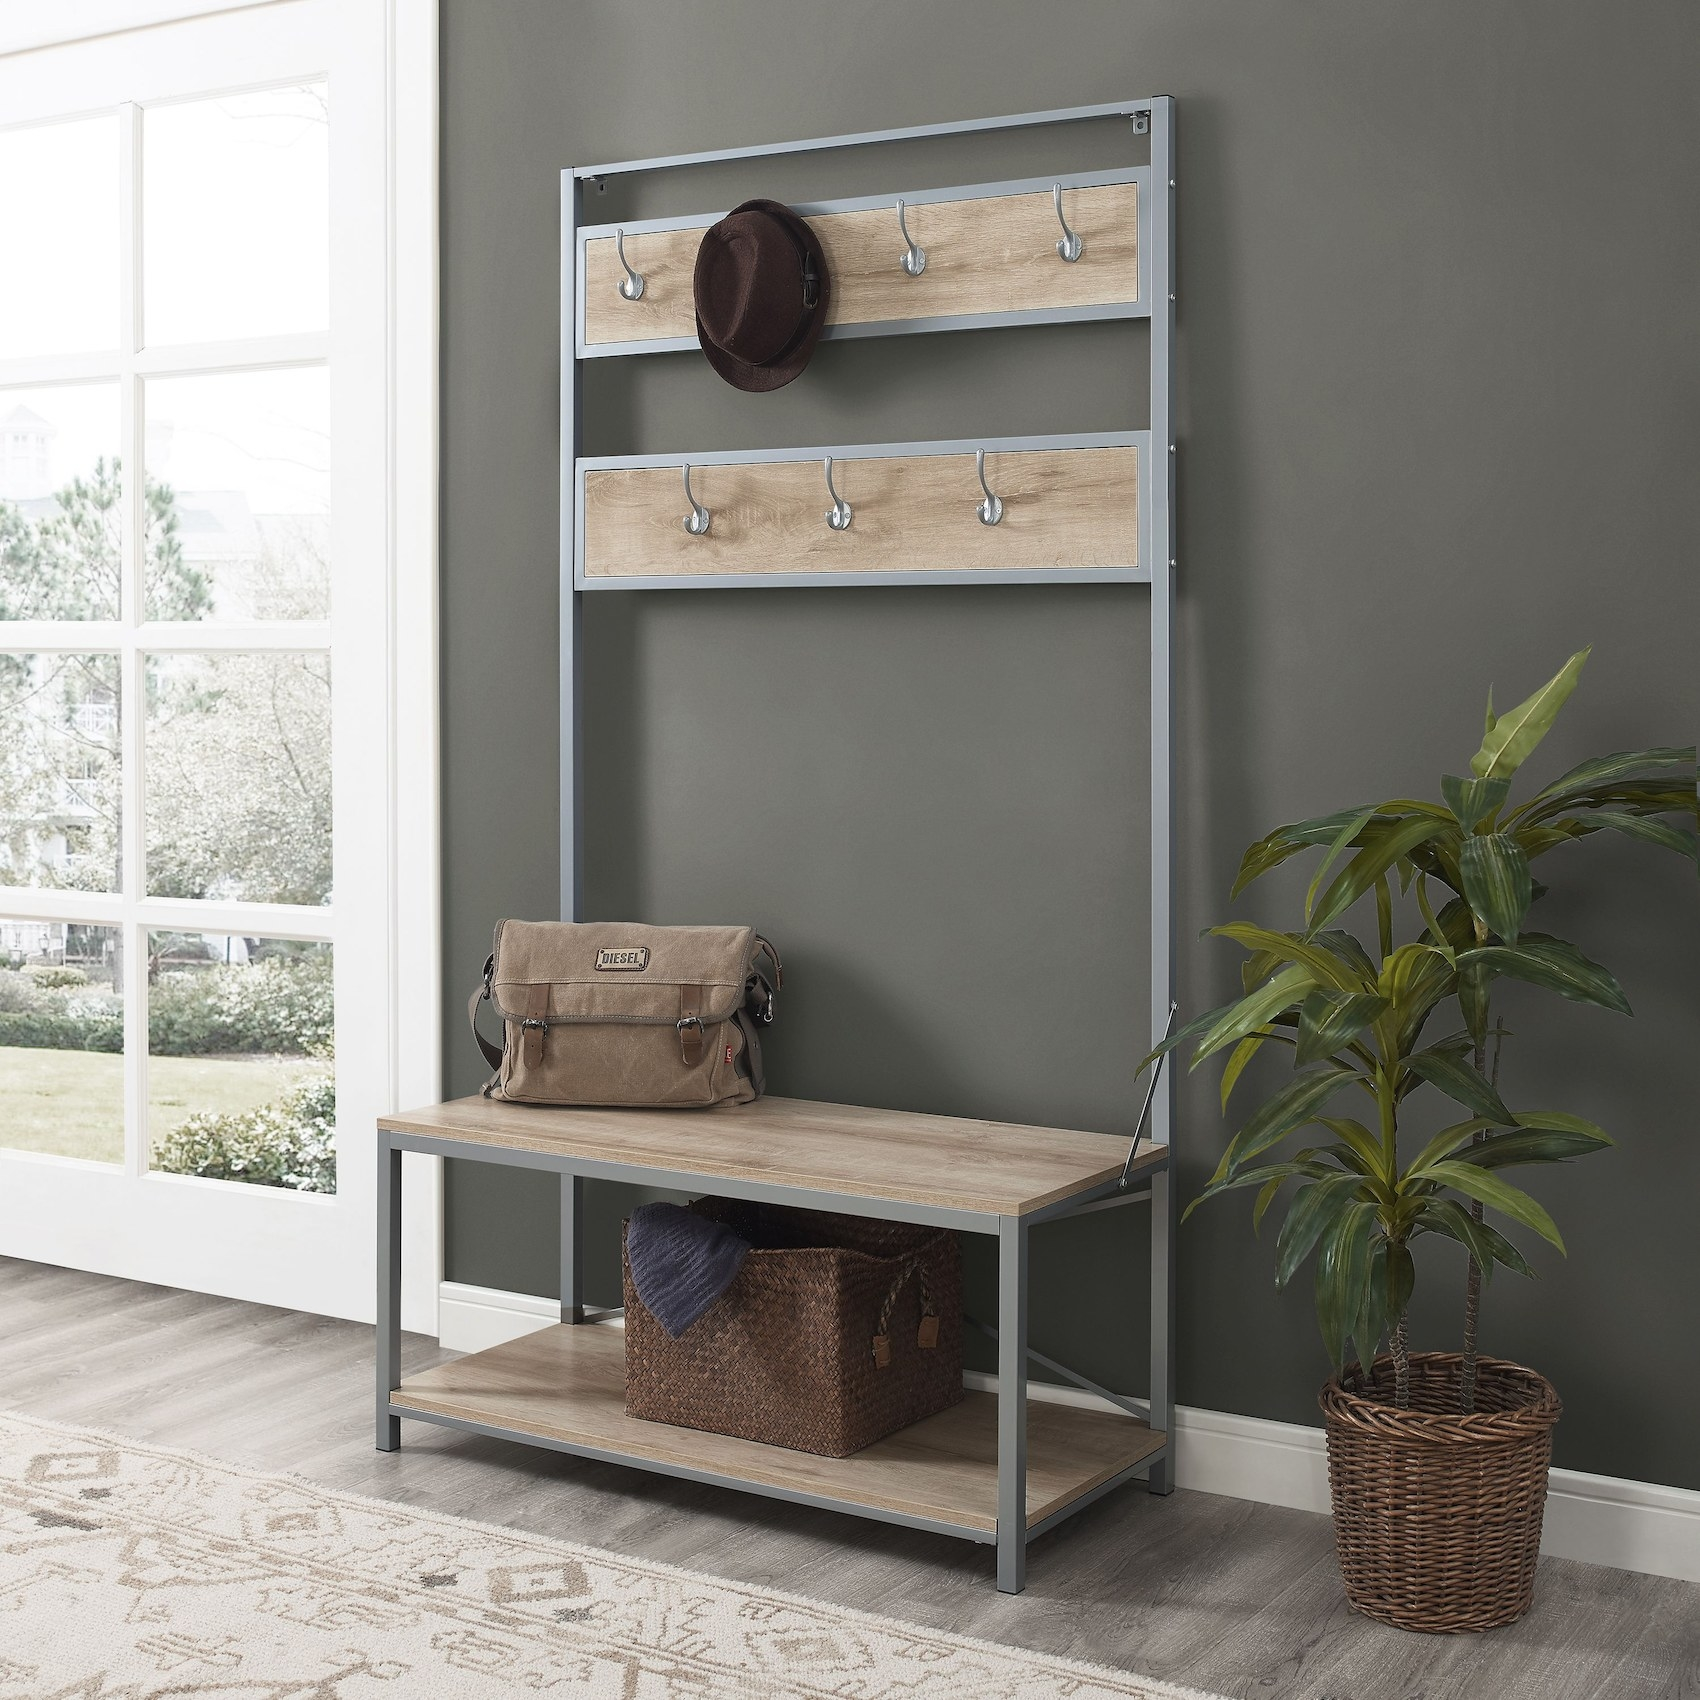 The wood and metal hall tree with coat hooks, a bench and storage in an entryway